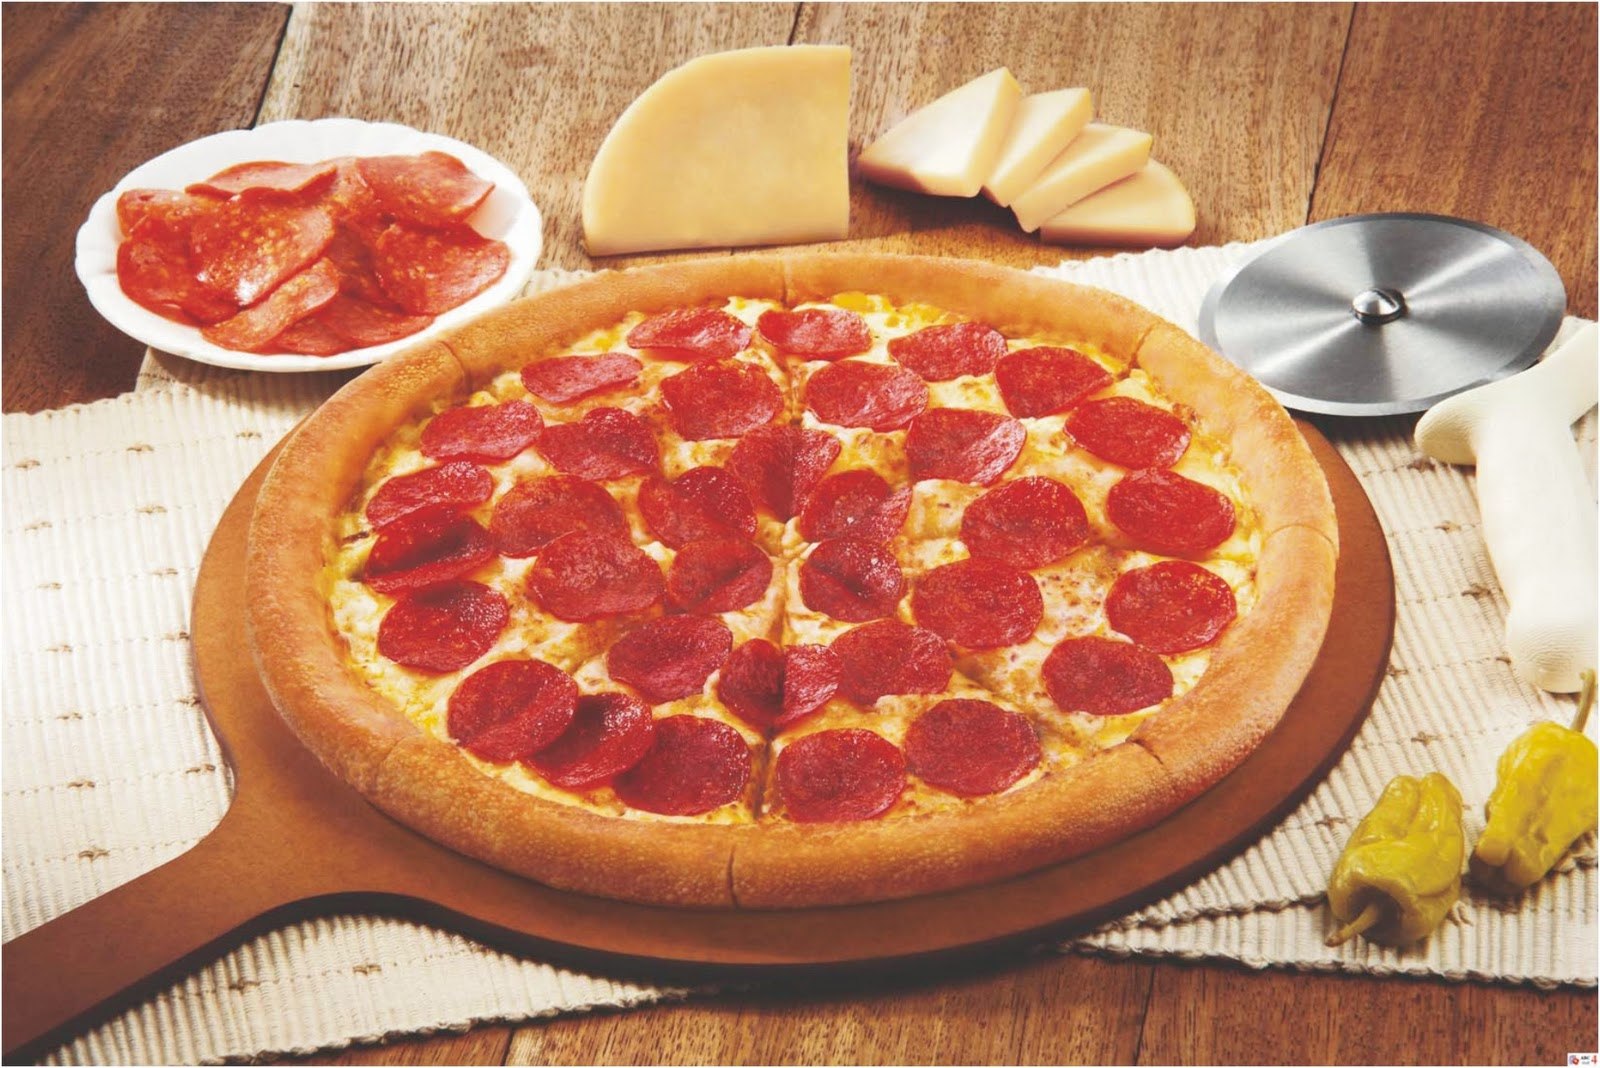 papa jhons pizza Find out how many calories are in papa john's pizza calorieking provides nutritional food information for calorie counters and people trying to lose weight.